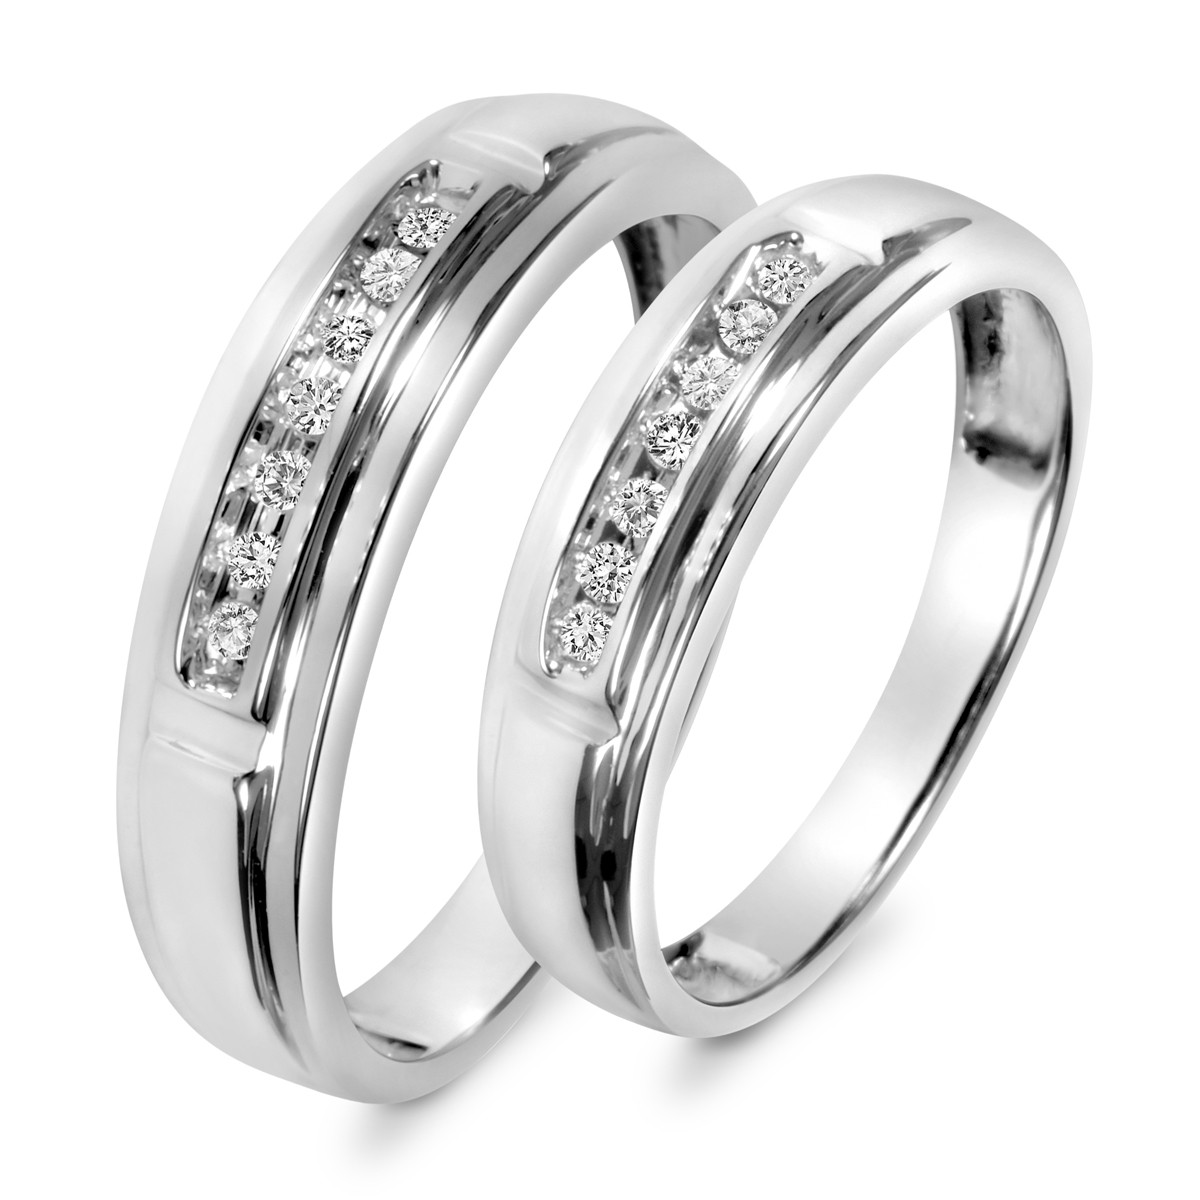 18 carat tw diamond his and hers wedding band set 10k white gold wb518w10k - White Gold Wedding Ring